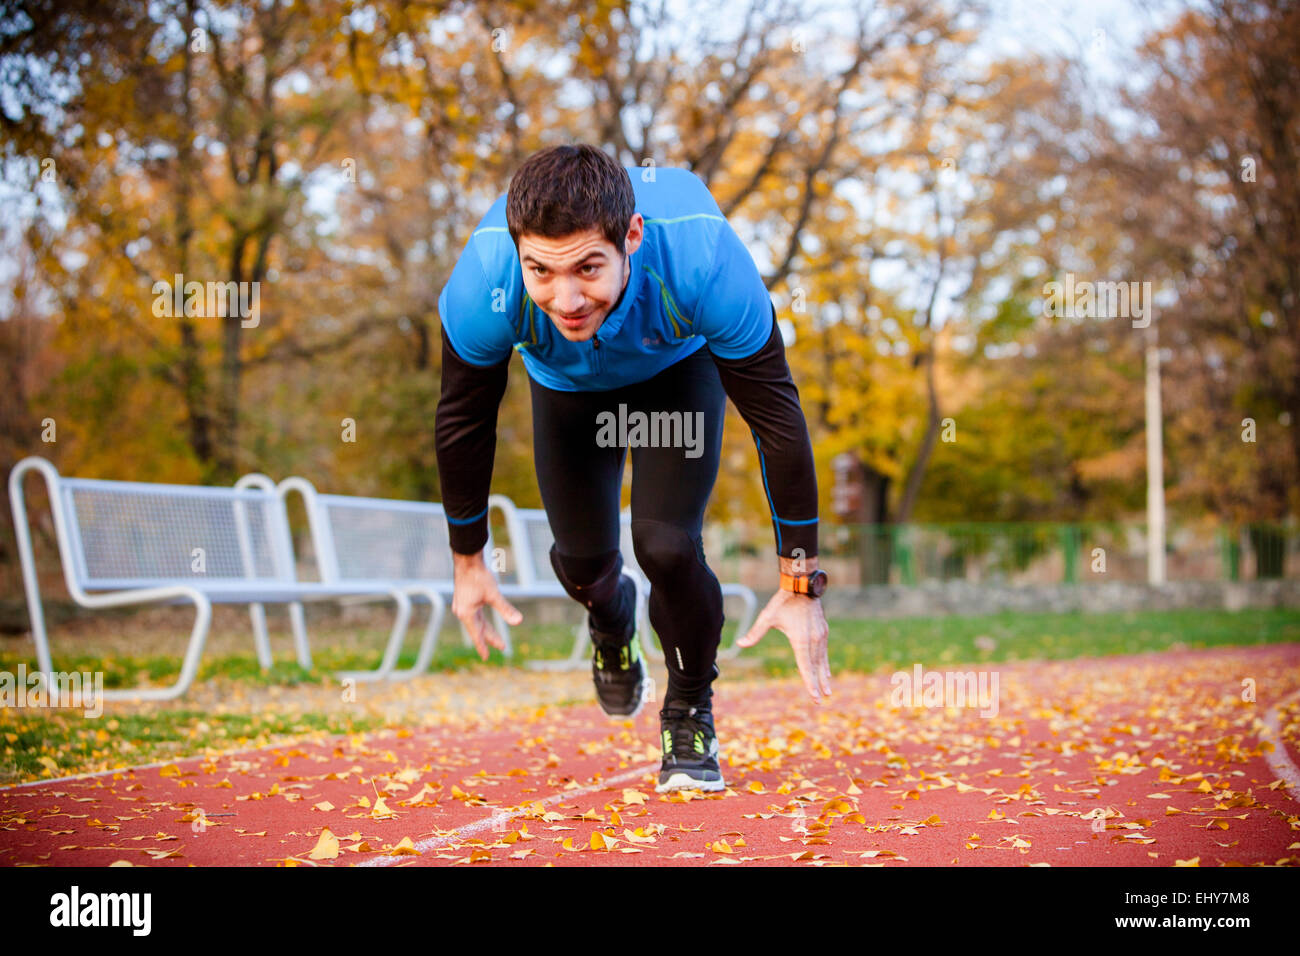 Male runner doing sprint training - Stock Image